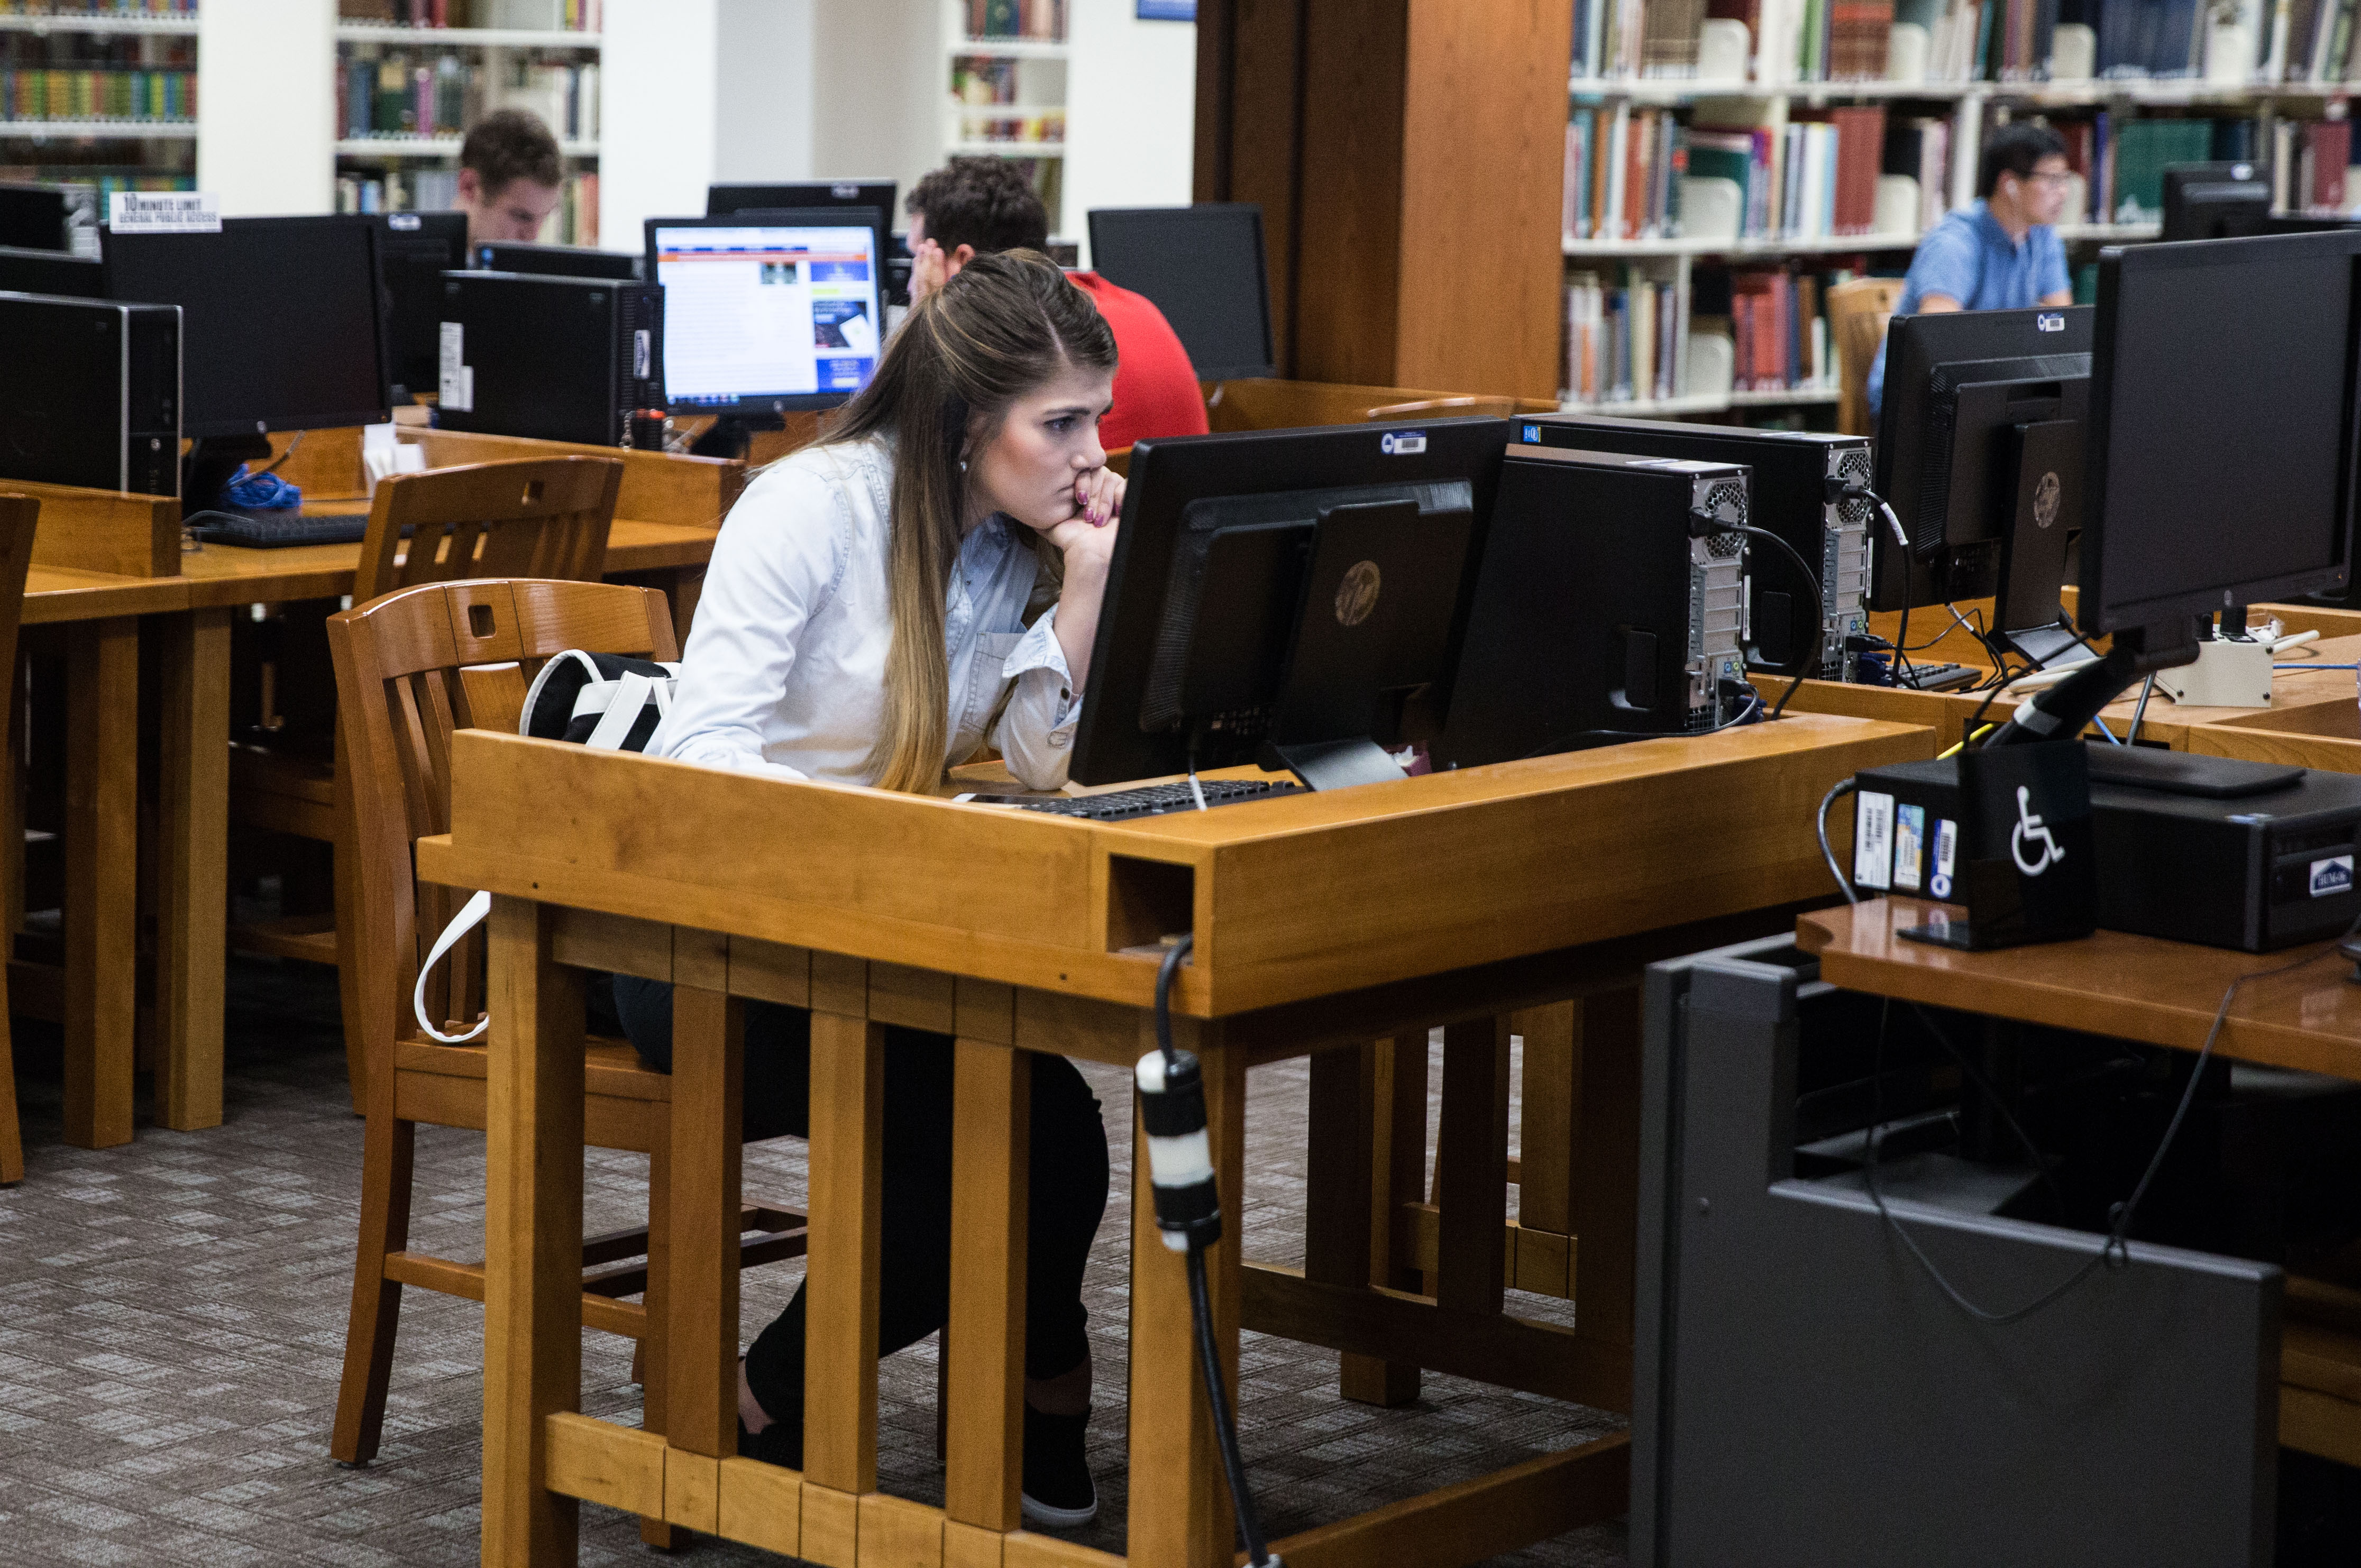 Byu Students Have Access To A Wide Variety Of Academic And Technological Materials At The Harold B Lee Library Maddi Driggs